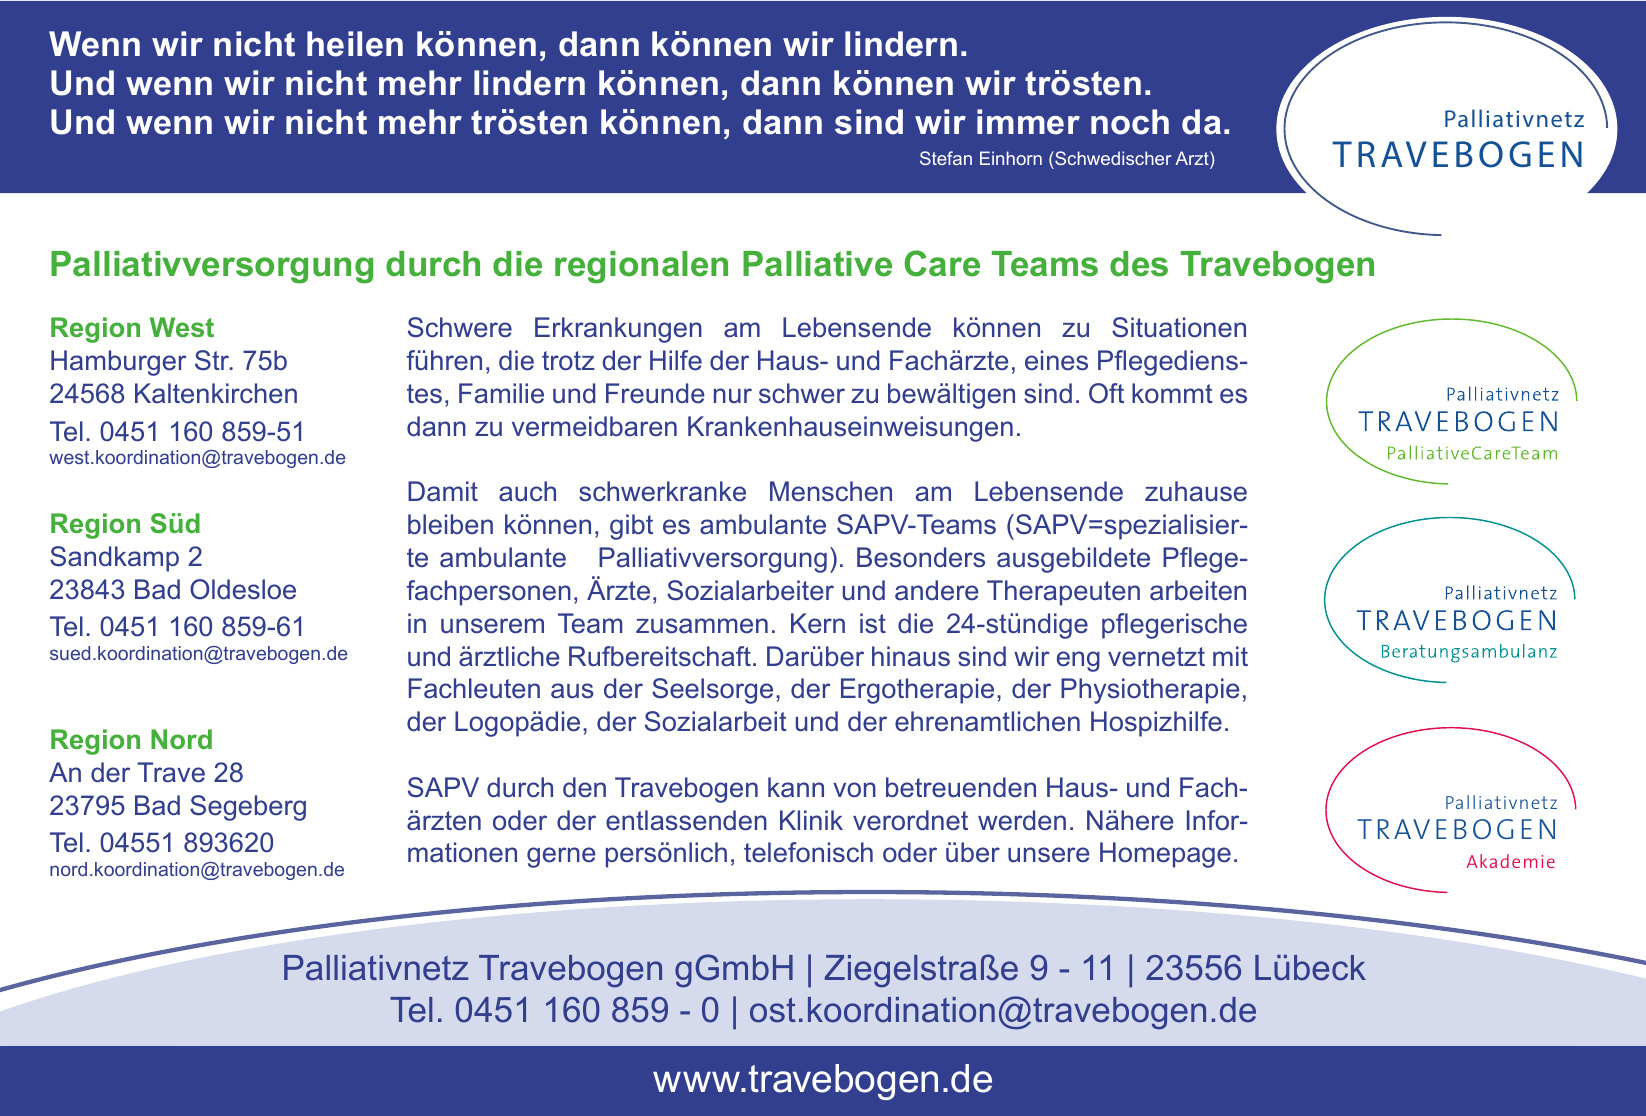 Palliativnetz Travebogen gGmbH